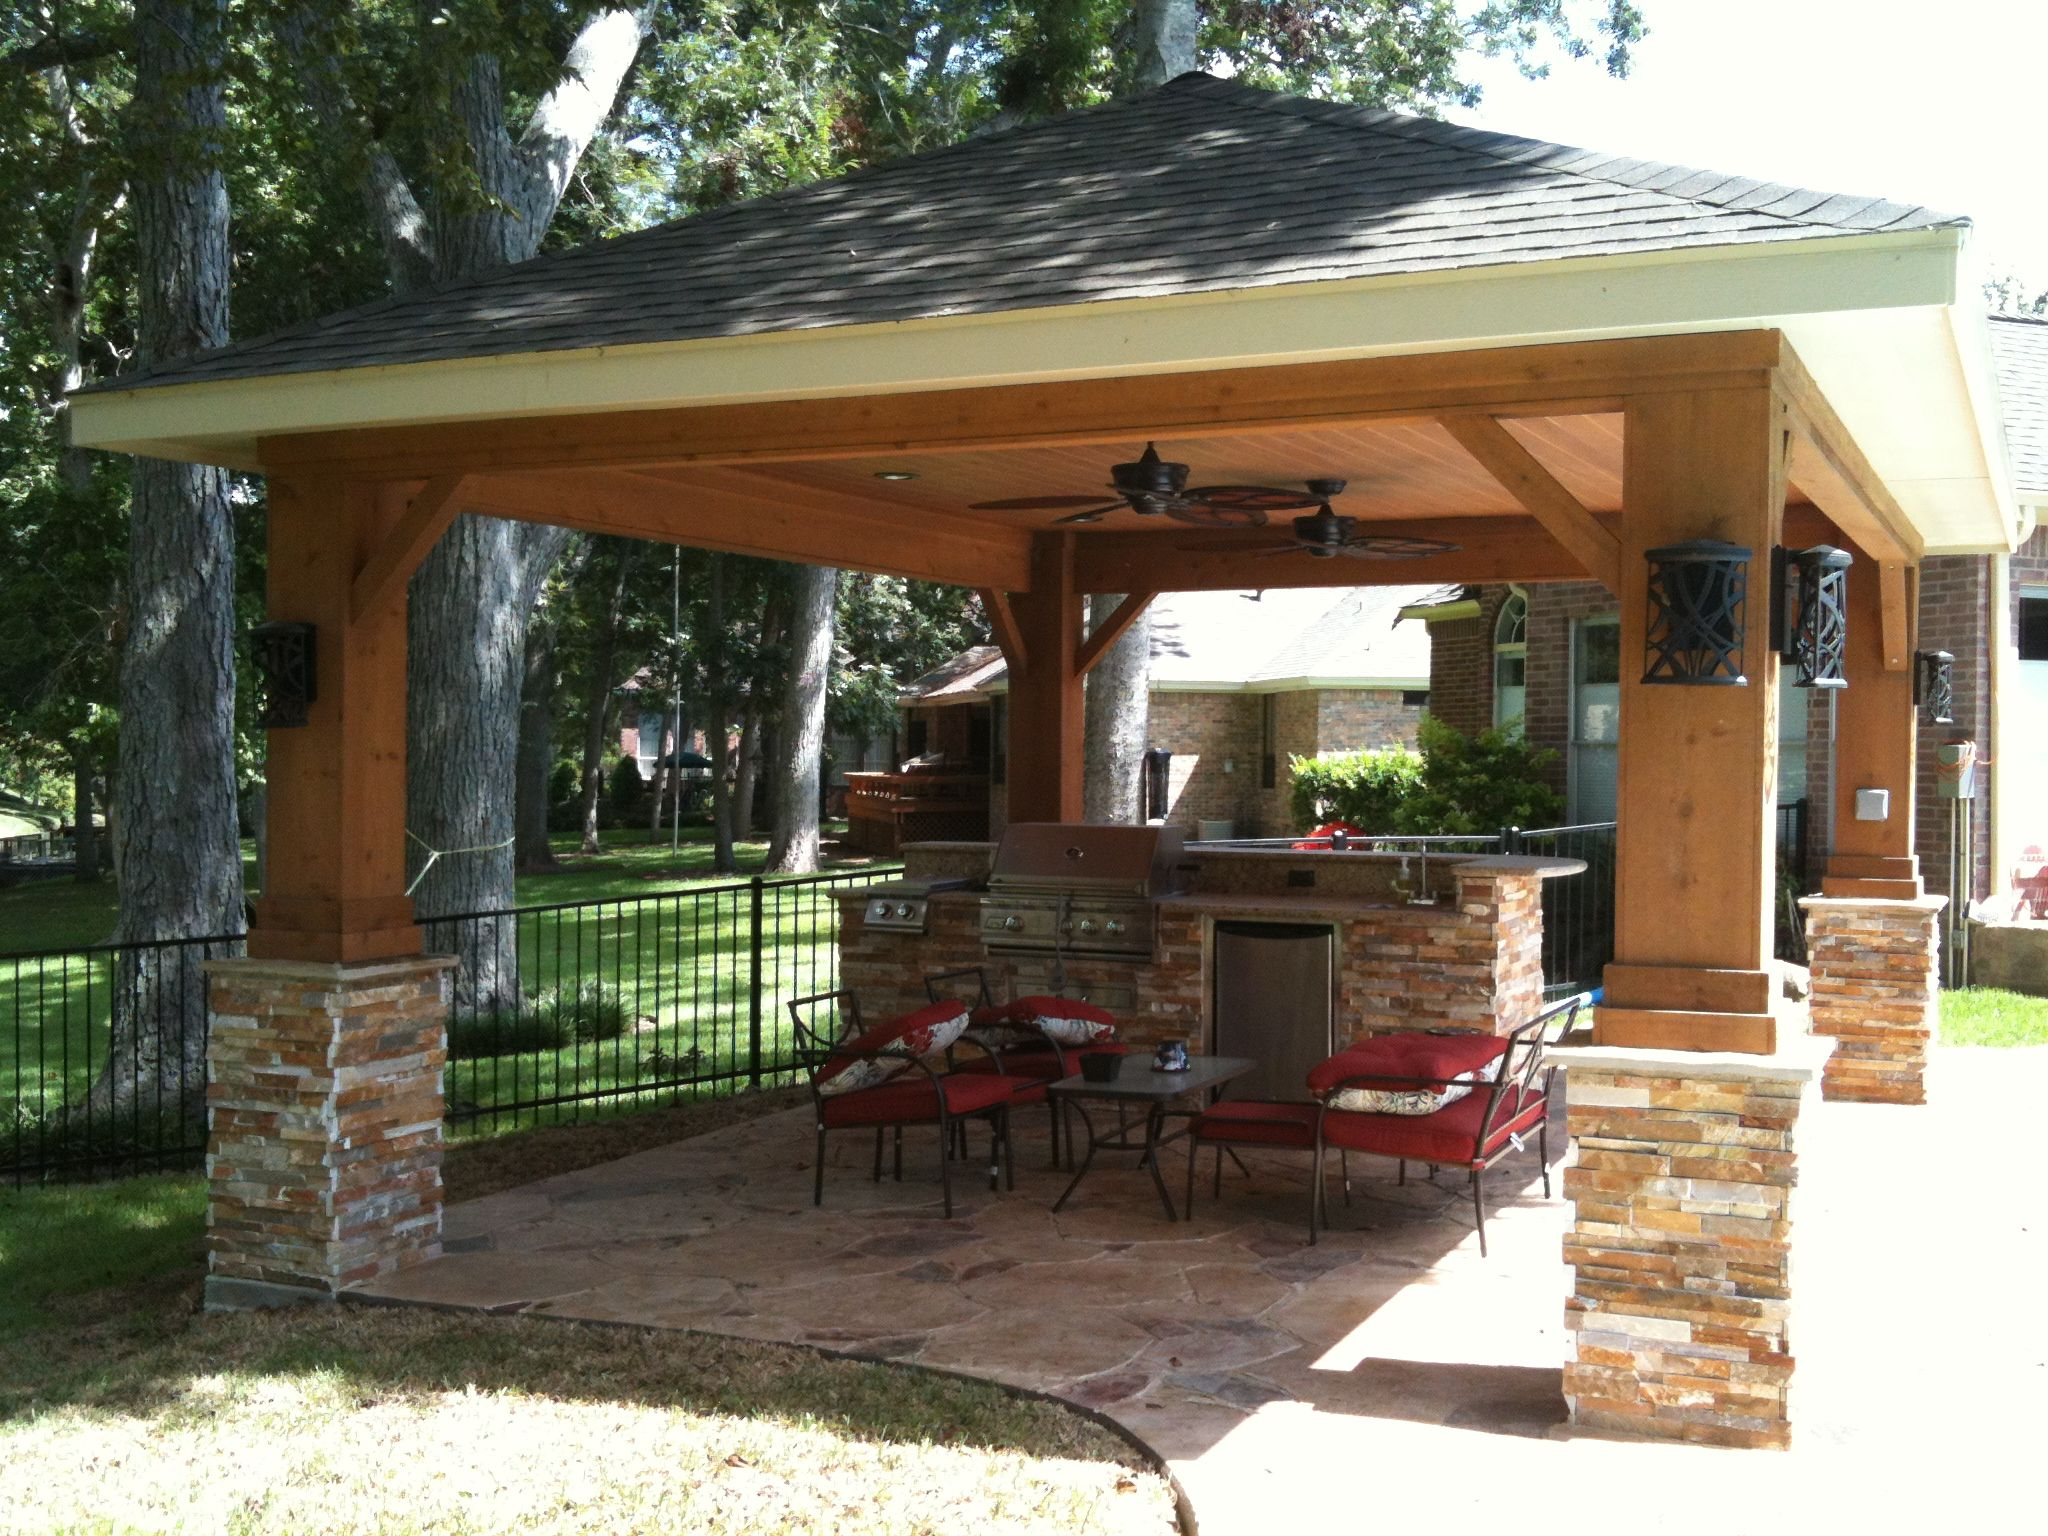 Freestanding Patio Cover featuring stonework and an outdoor